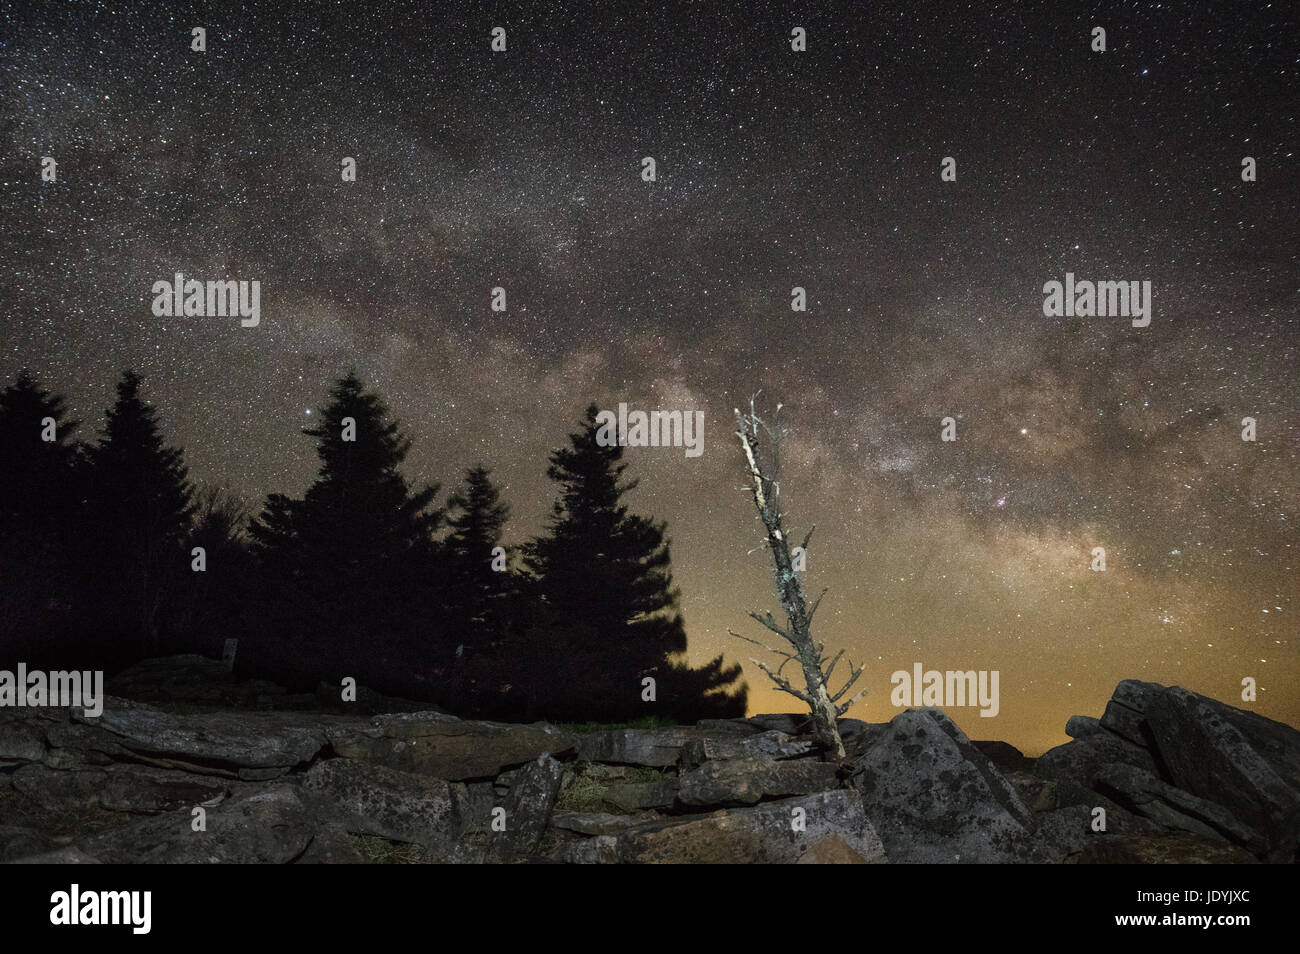 A bare pine tree stands in a boulder field against silhouetted trees and the Milky Way at night on top of Spruce - Stock Image